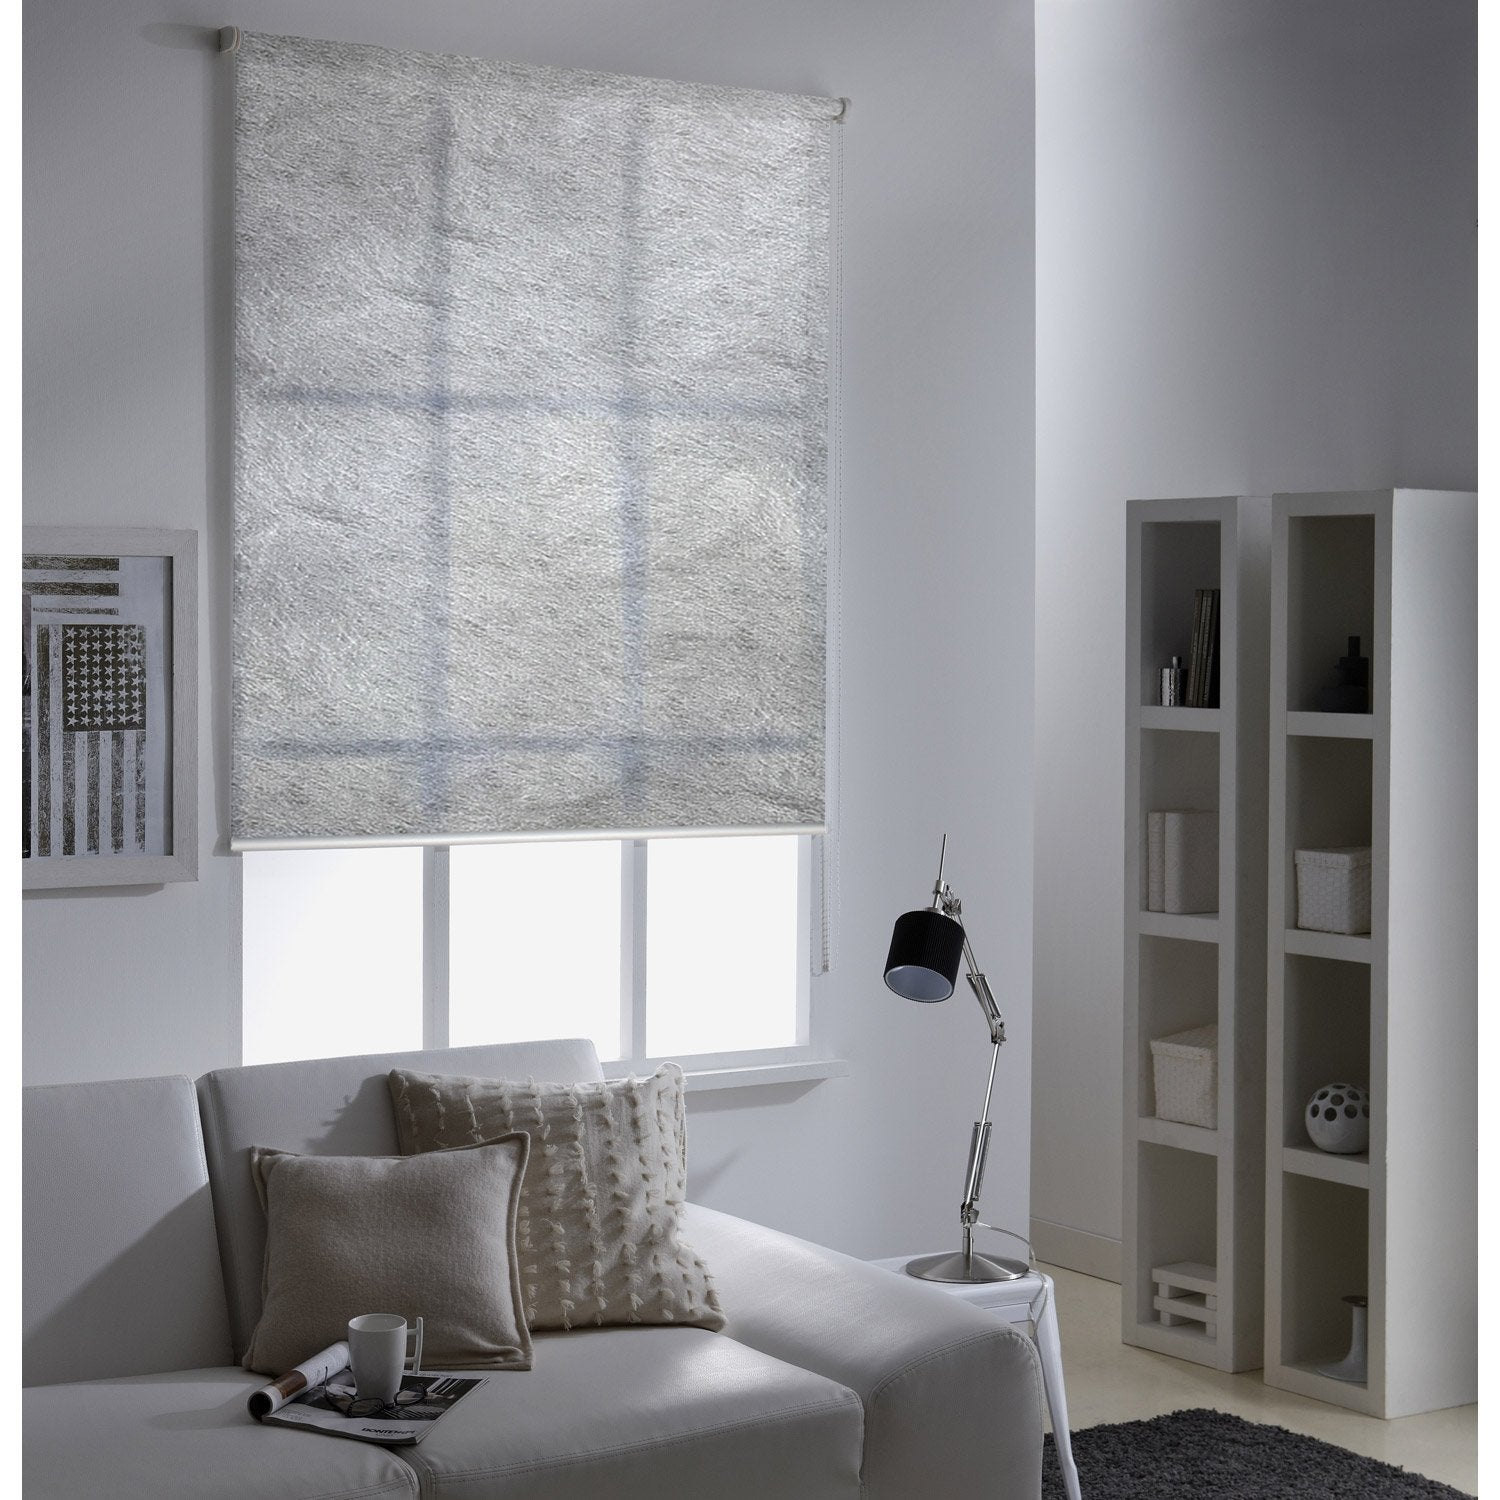 store enrouleur tamisant frost gris argent 94x190 cm leroy merlin. Black Bedroom Furniture Sets. Home Design Ideas